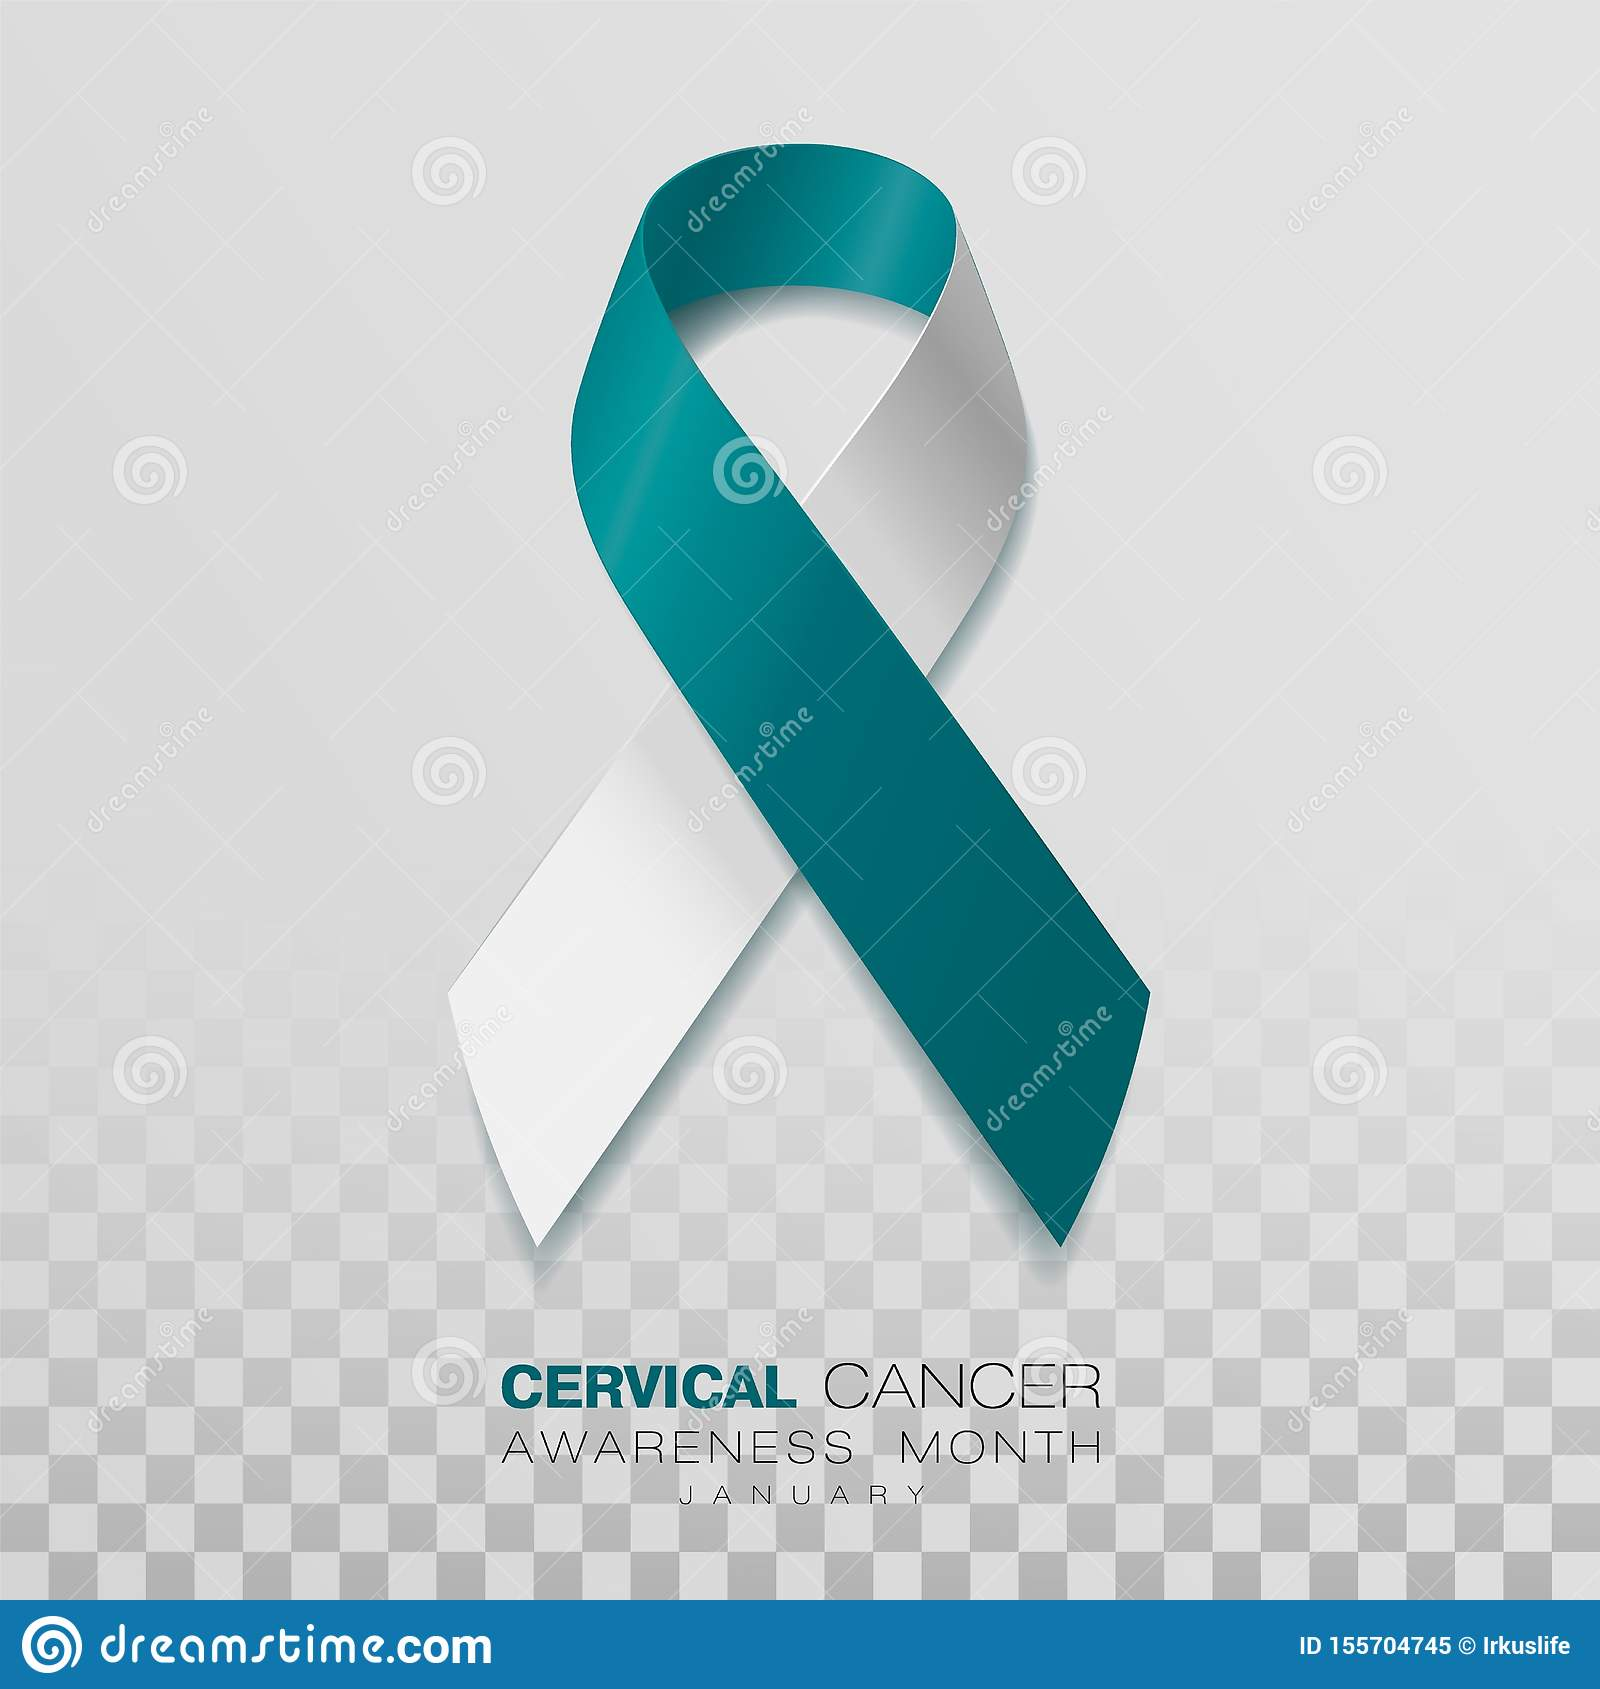 Cervical Cancer Awareness Month. Teal And White Ribbon Isolated On Transparent Background. Vector Design Template For